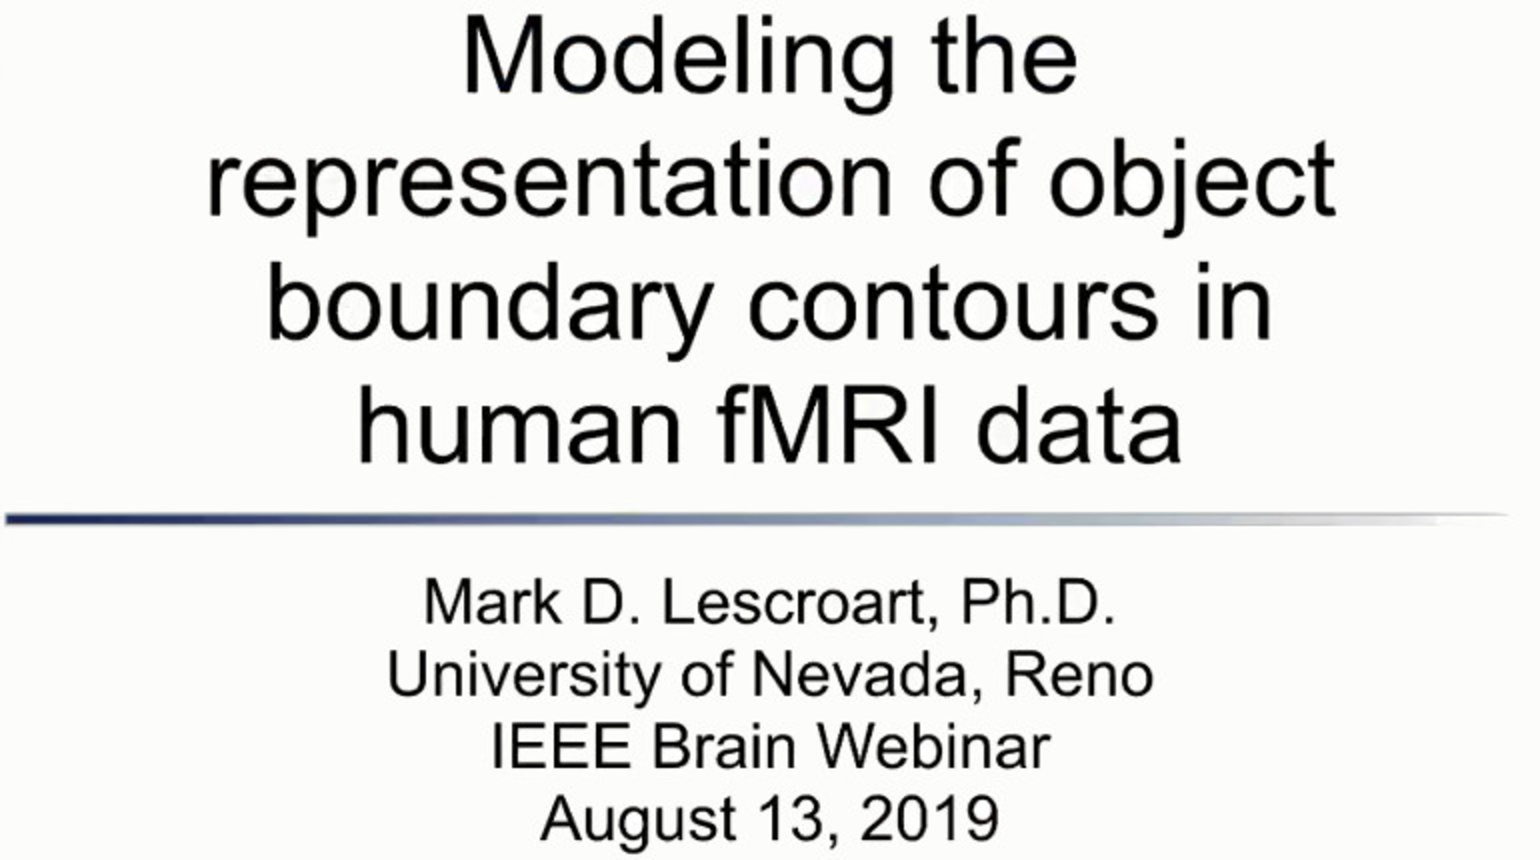 IEEE Brain: Modeling the Representation of Object Boundary Contours in Human fMRI Data